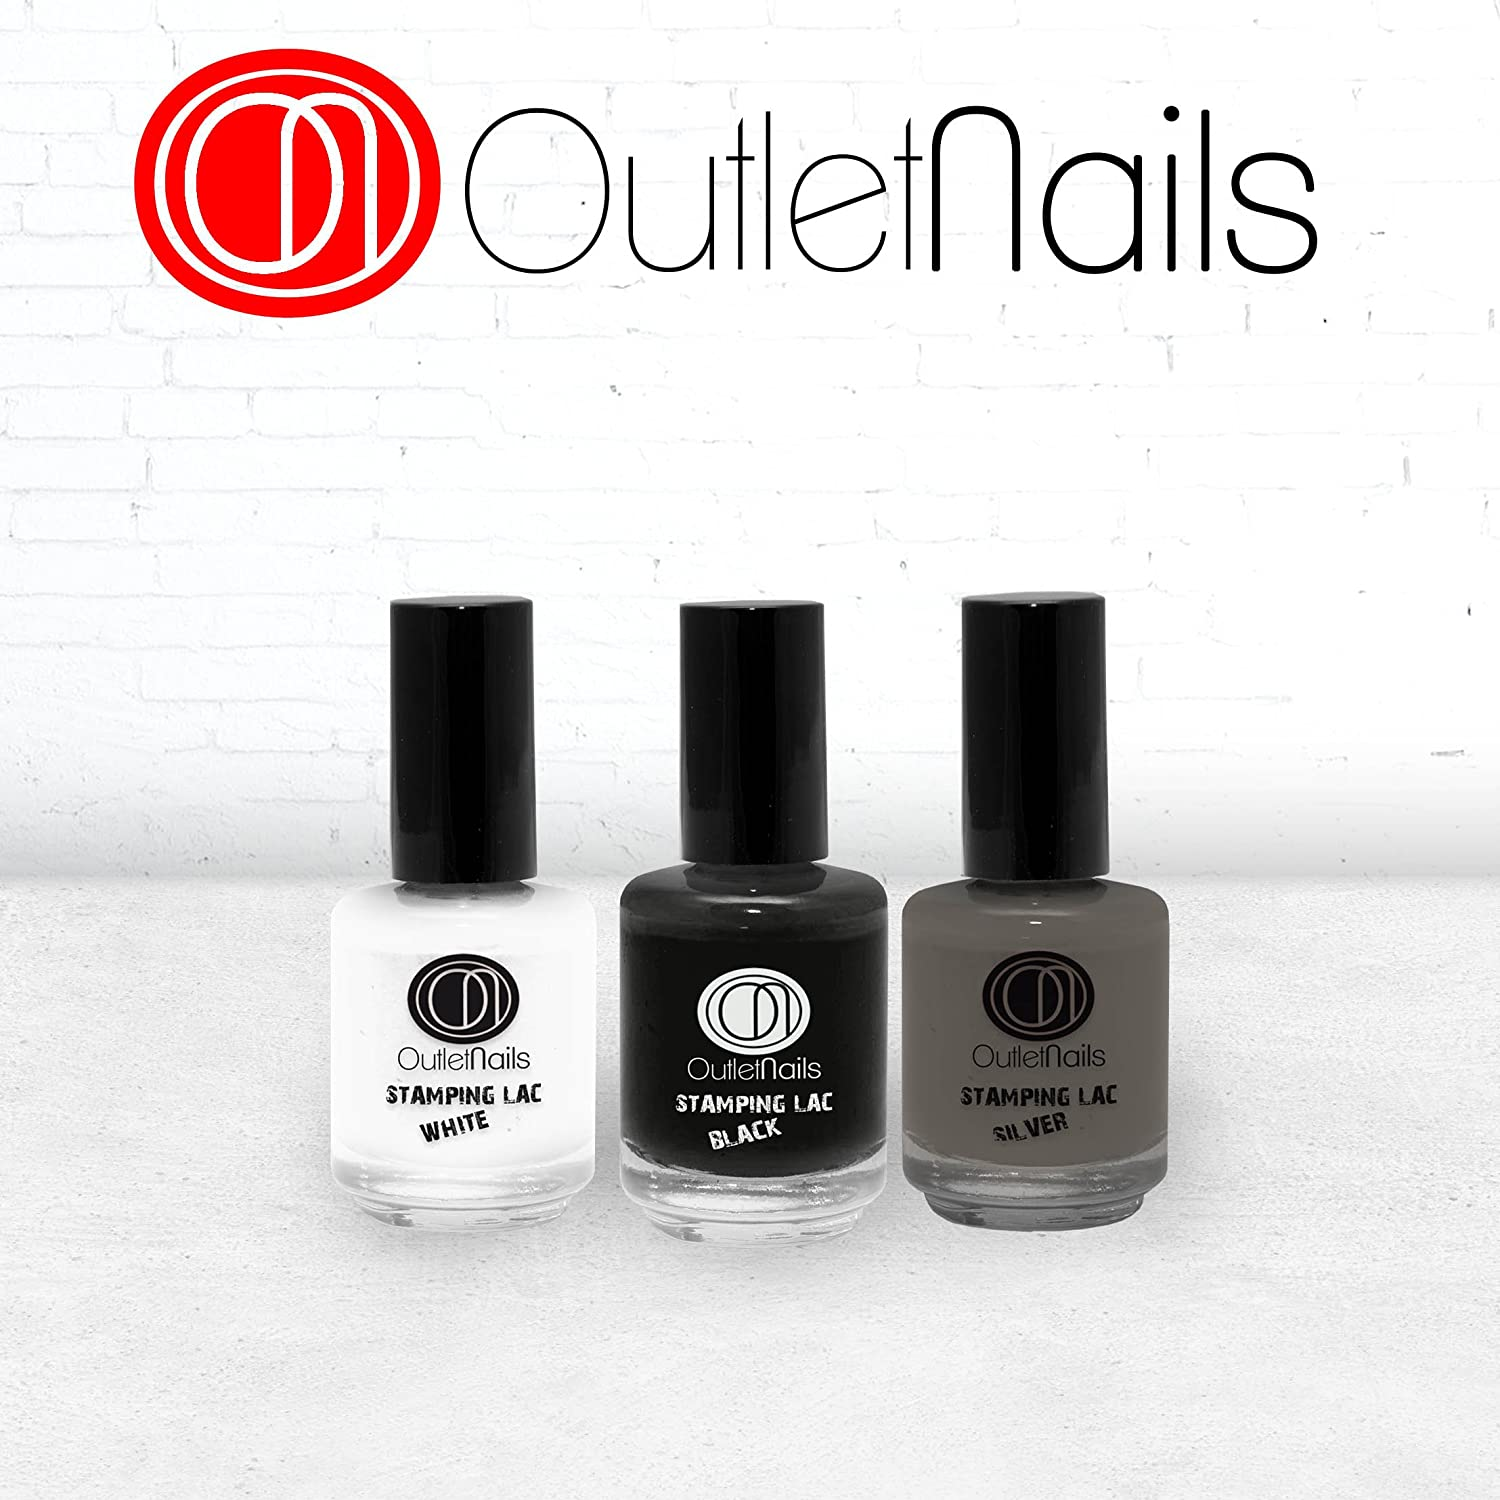 Pack 3 Stamping Lac / Stamping Lac 15ml / Silver + White + Black / Nail Stamping Deco / Alta calidad / Decoración Uñas Ser Beauty S.L.